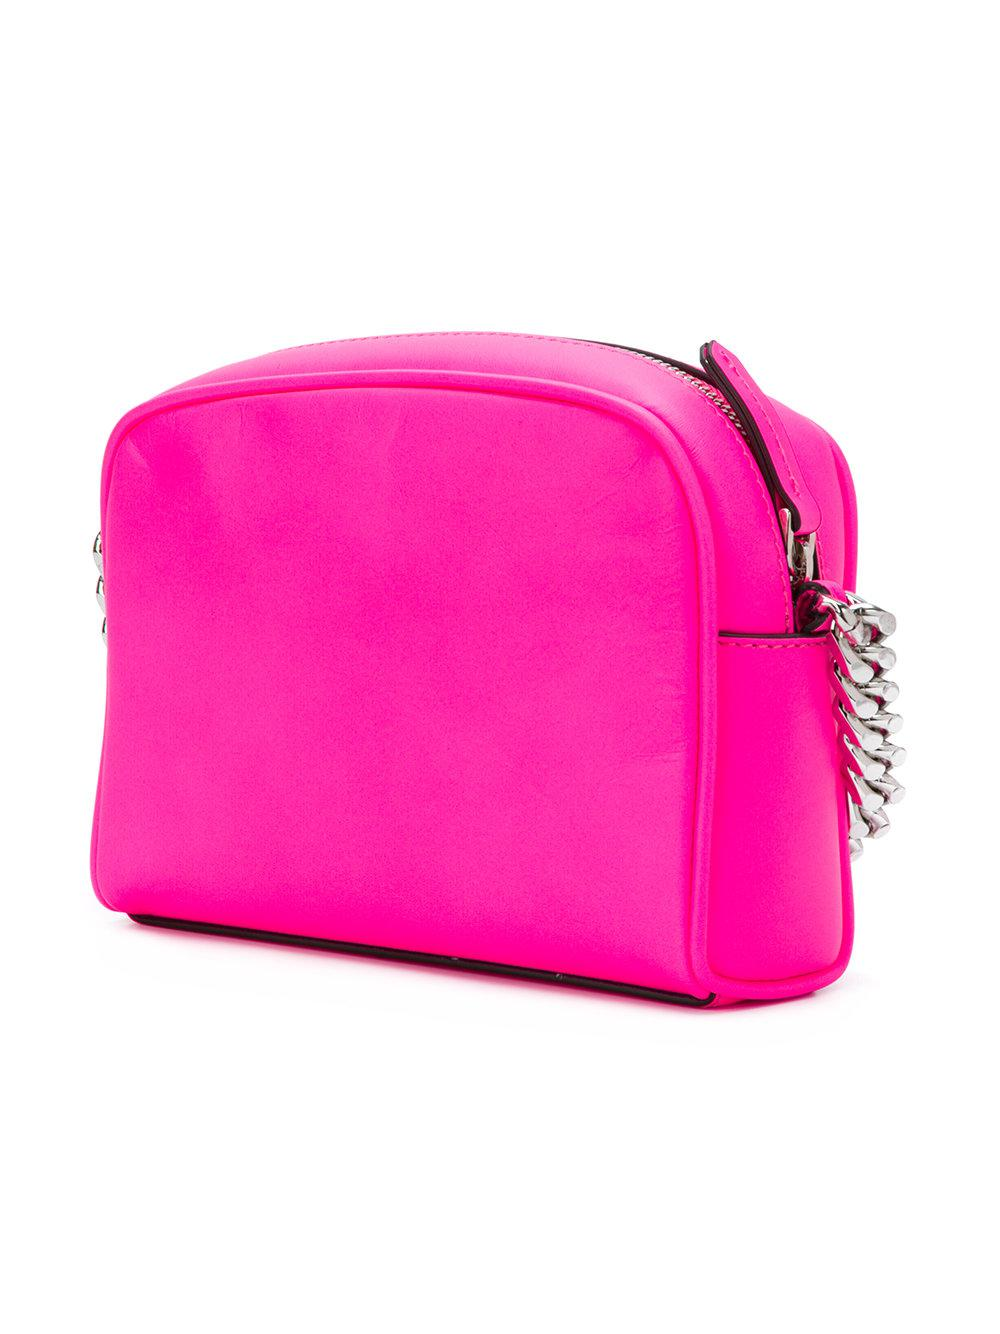 3b864029b040 Philippe Model Laval Bag in Pink - Lyst